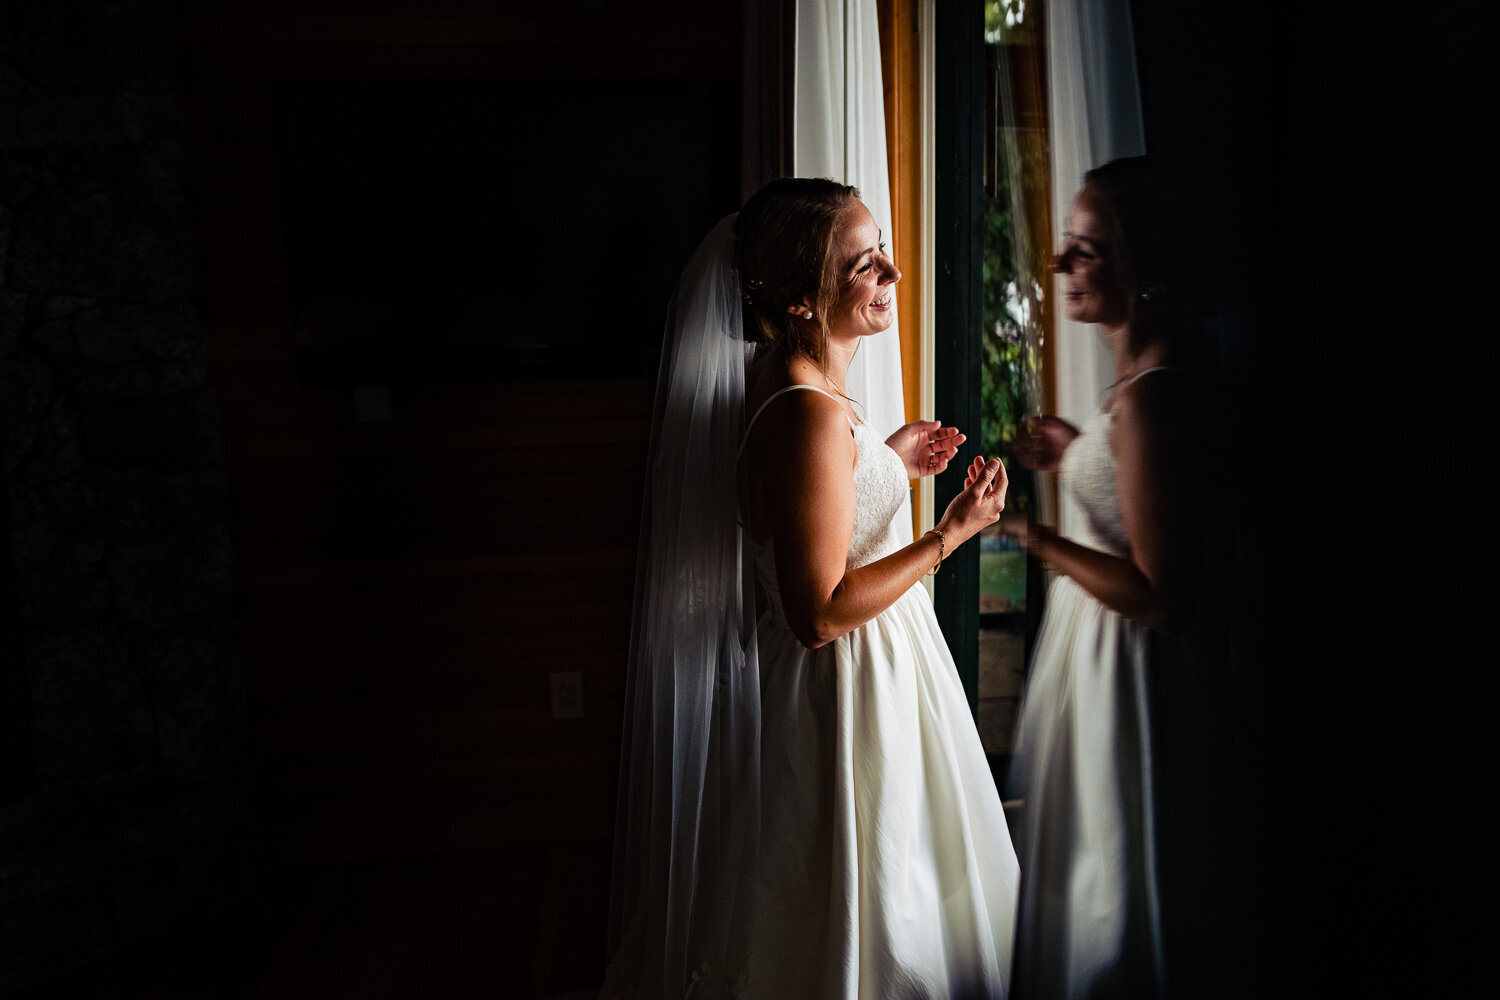 Bride-in-sheer-wedding-dress-with-vail-by-andy-madea-photography copy